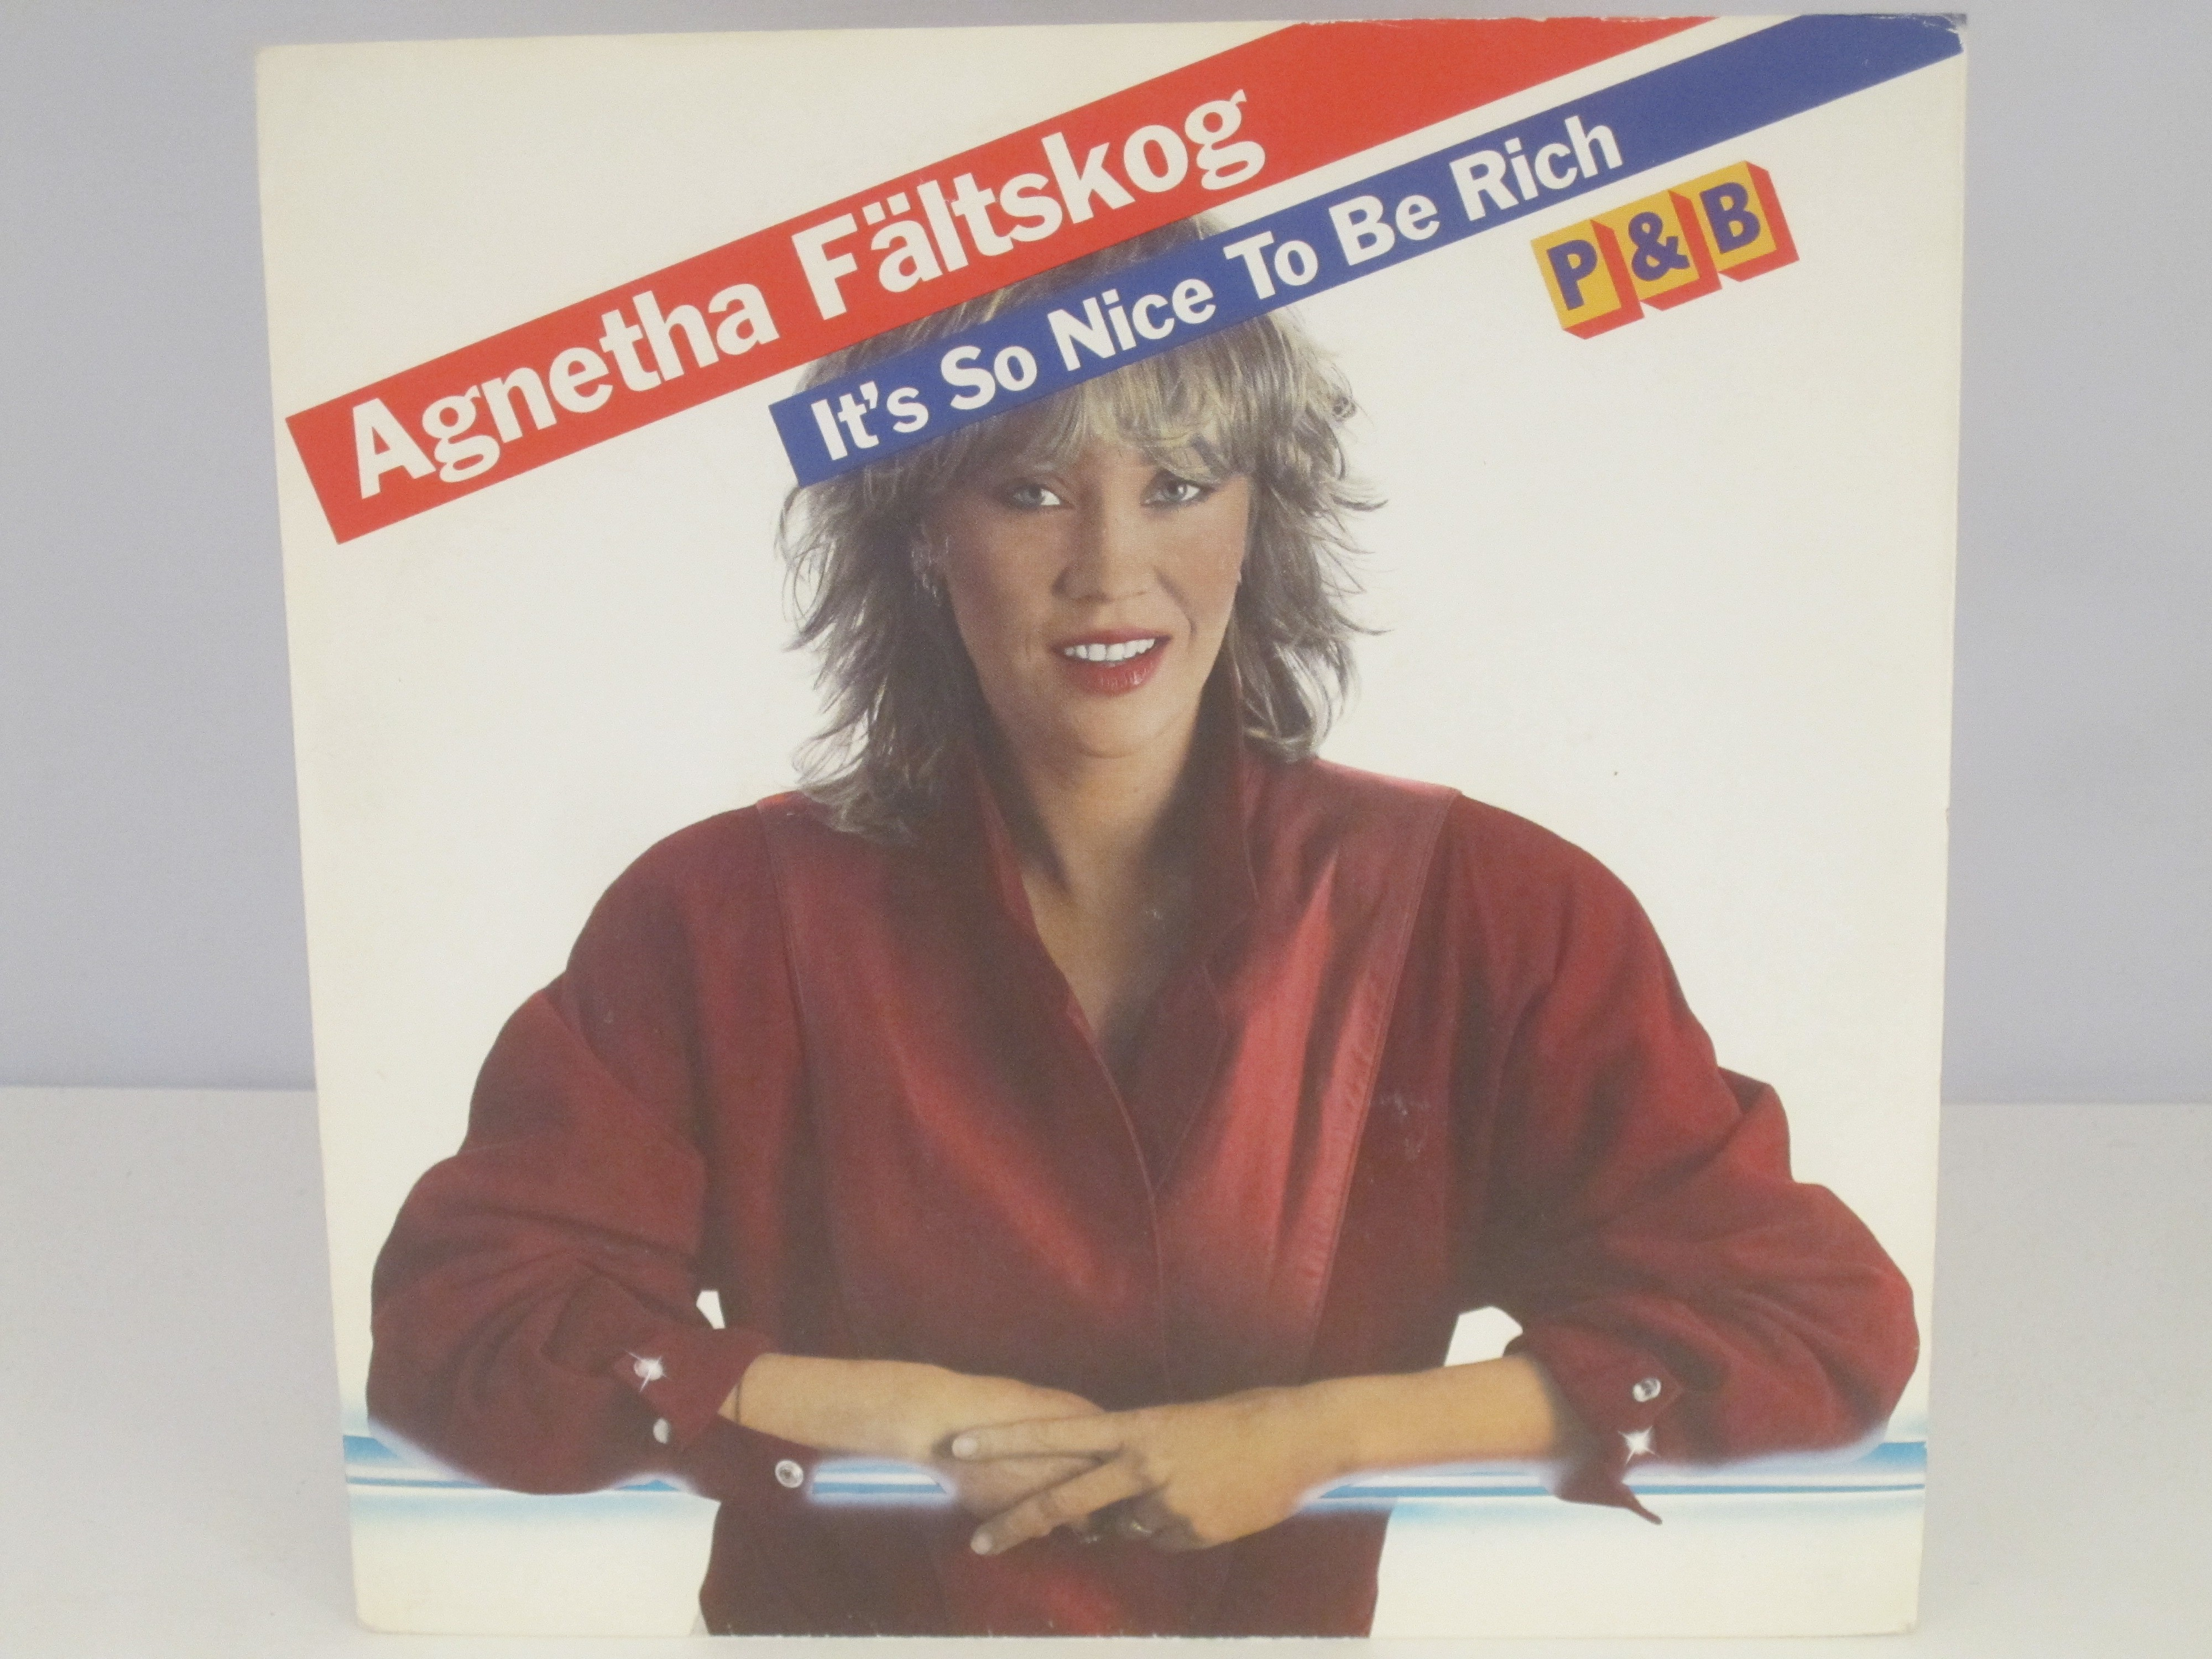 AGNETHA FÄLTSKOG : It's so nice to be rich / P&B